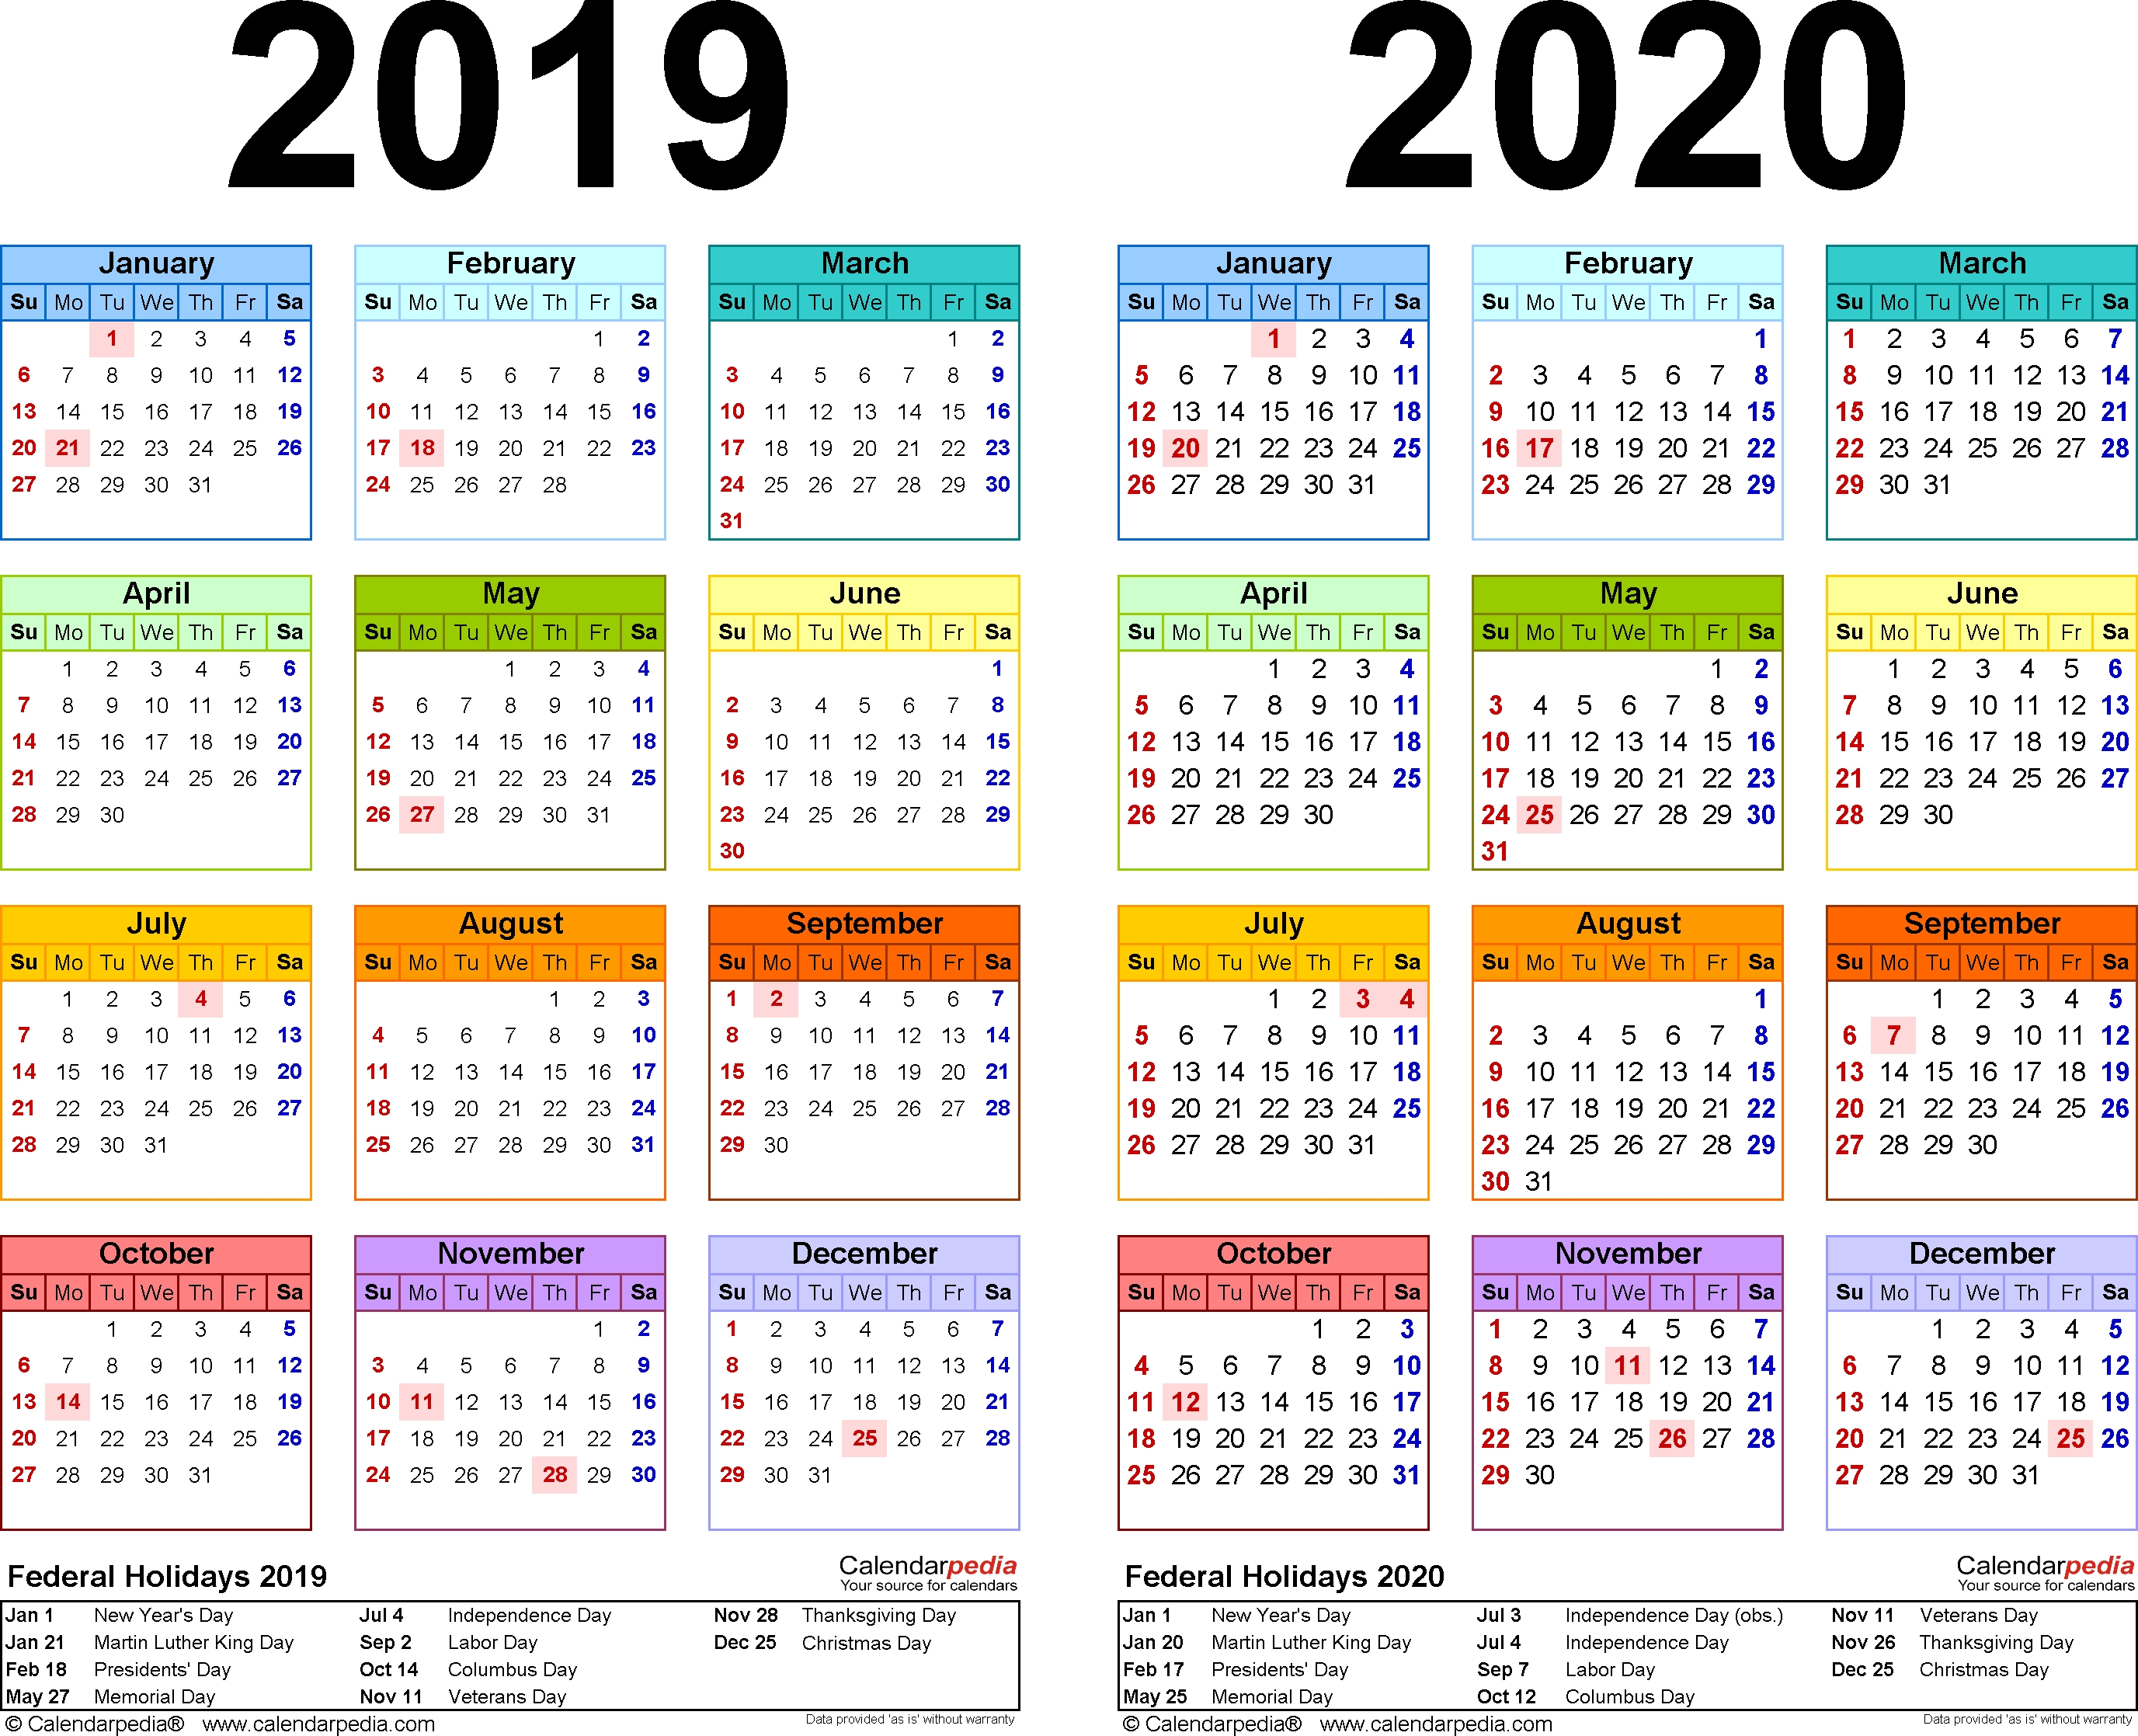 2019-2020 Calendar - Free Printable Two-Year Pdf Calendars Remarkable Calendar Template School Year 2019-18